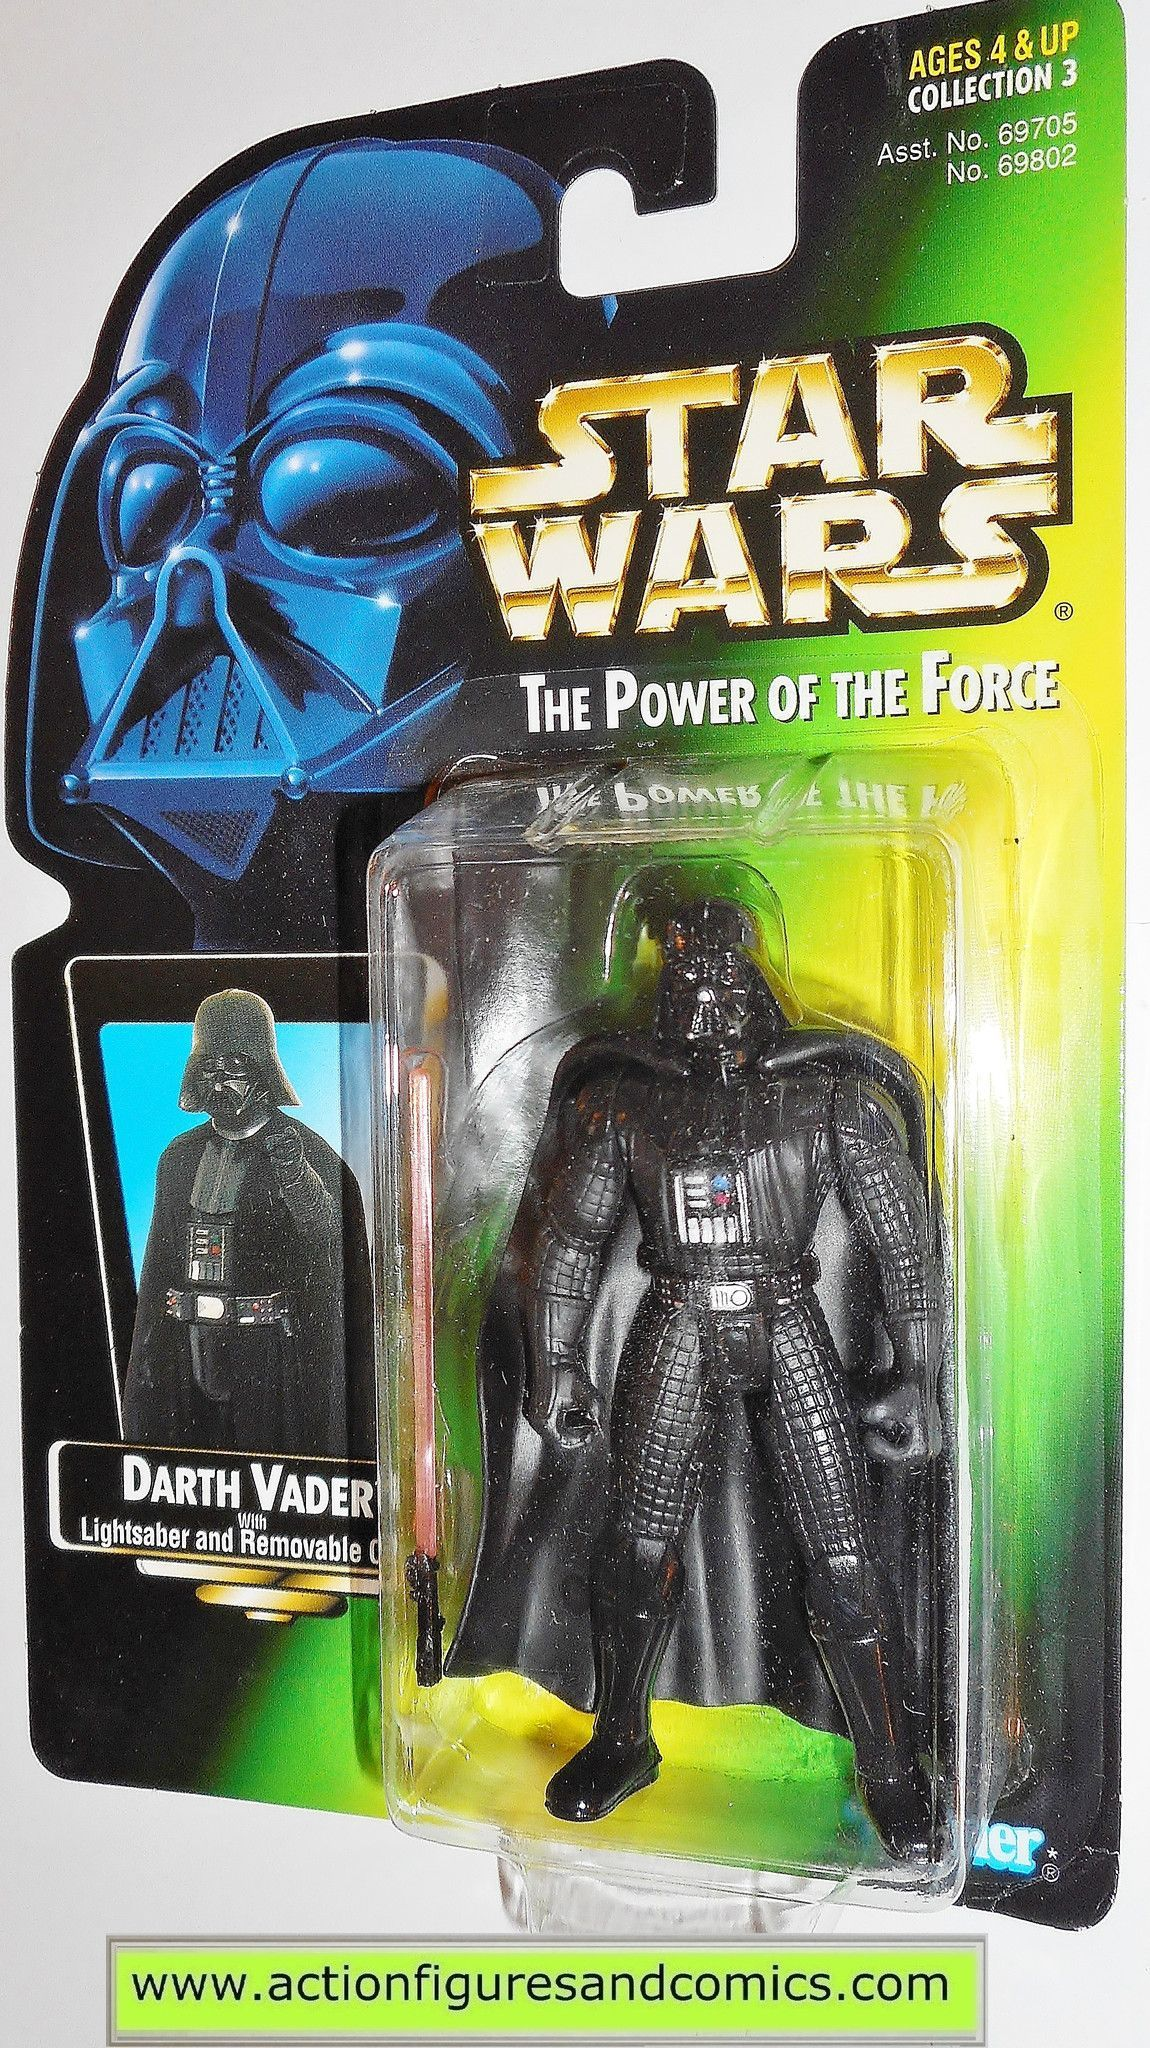 Star Wars Power of the Force POTF Green Card Han Solo Endor .00